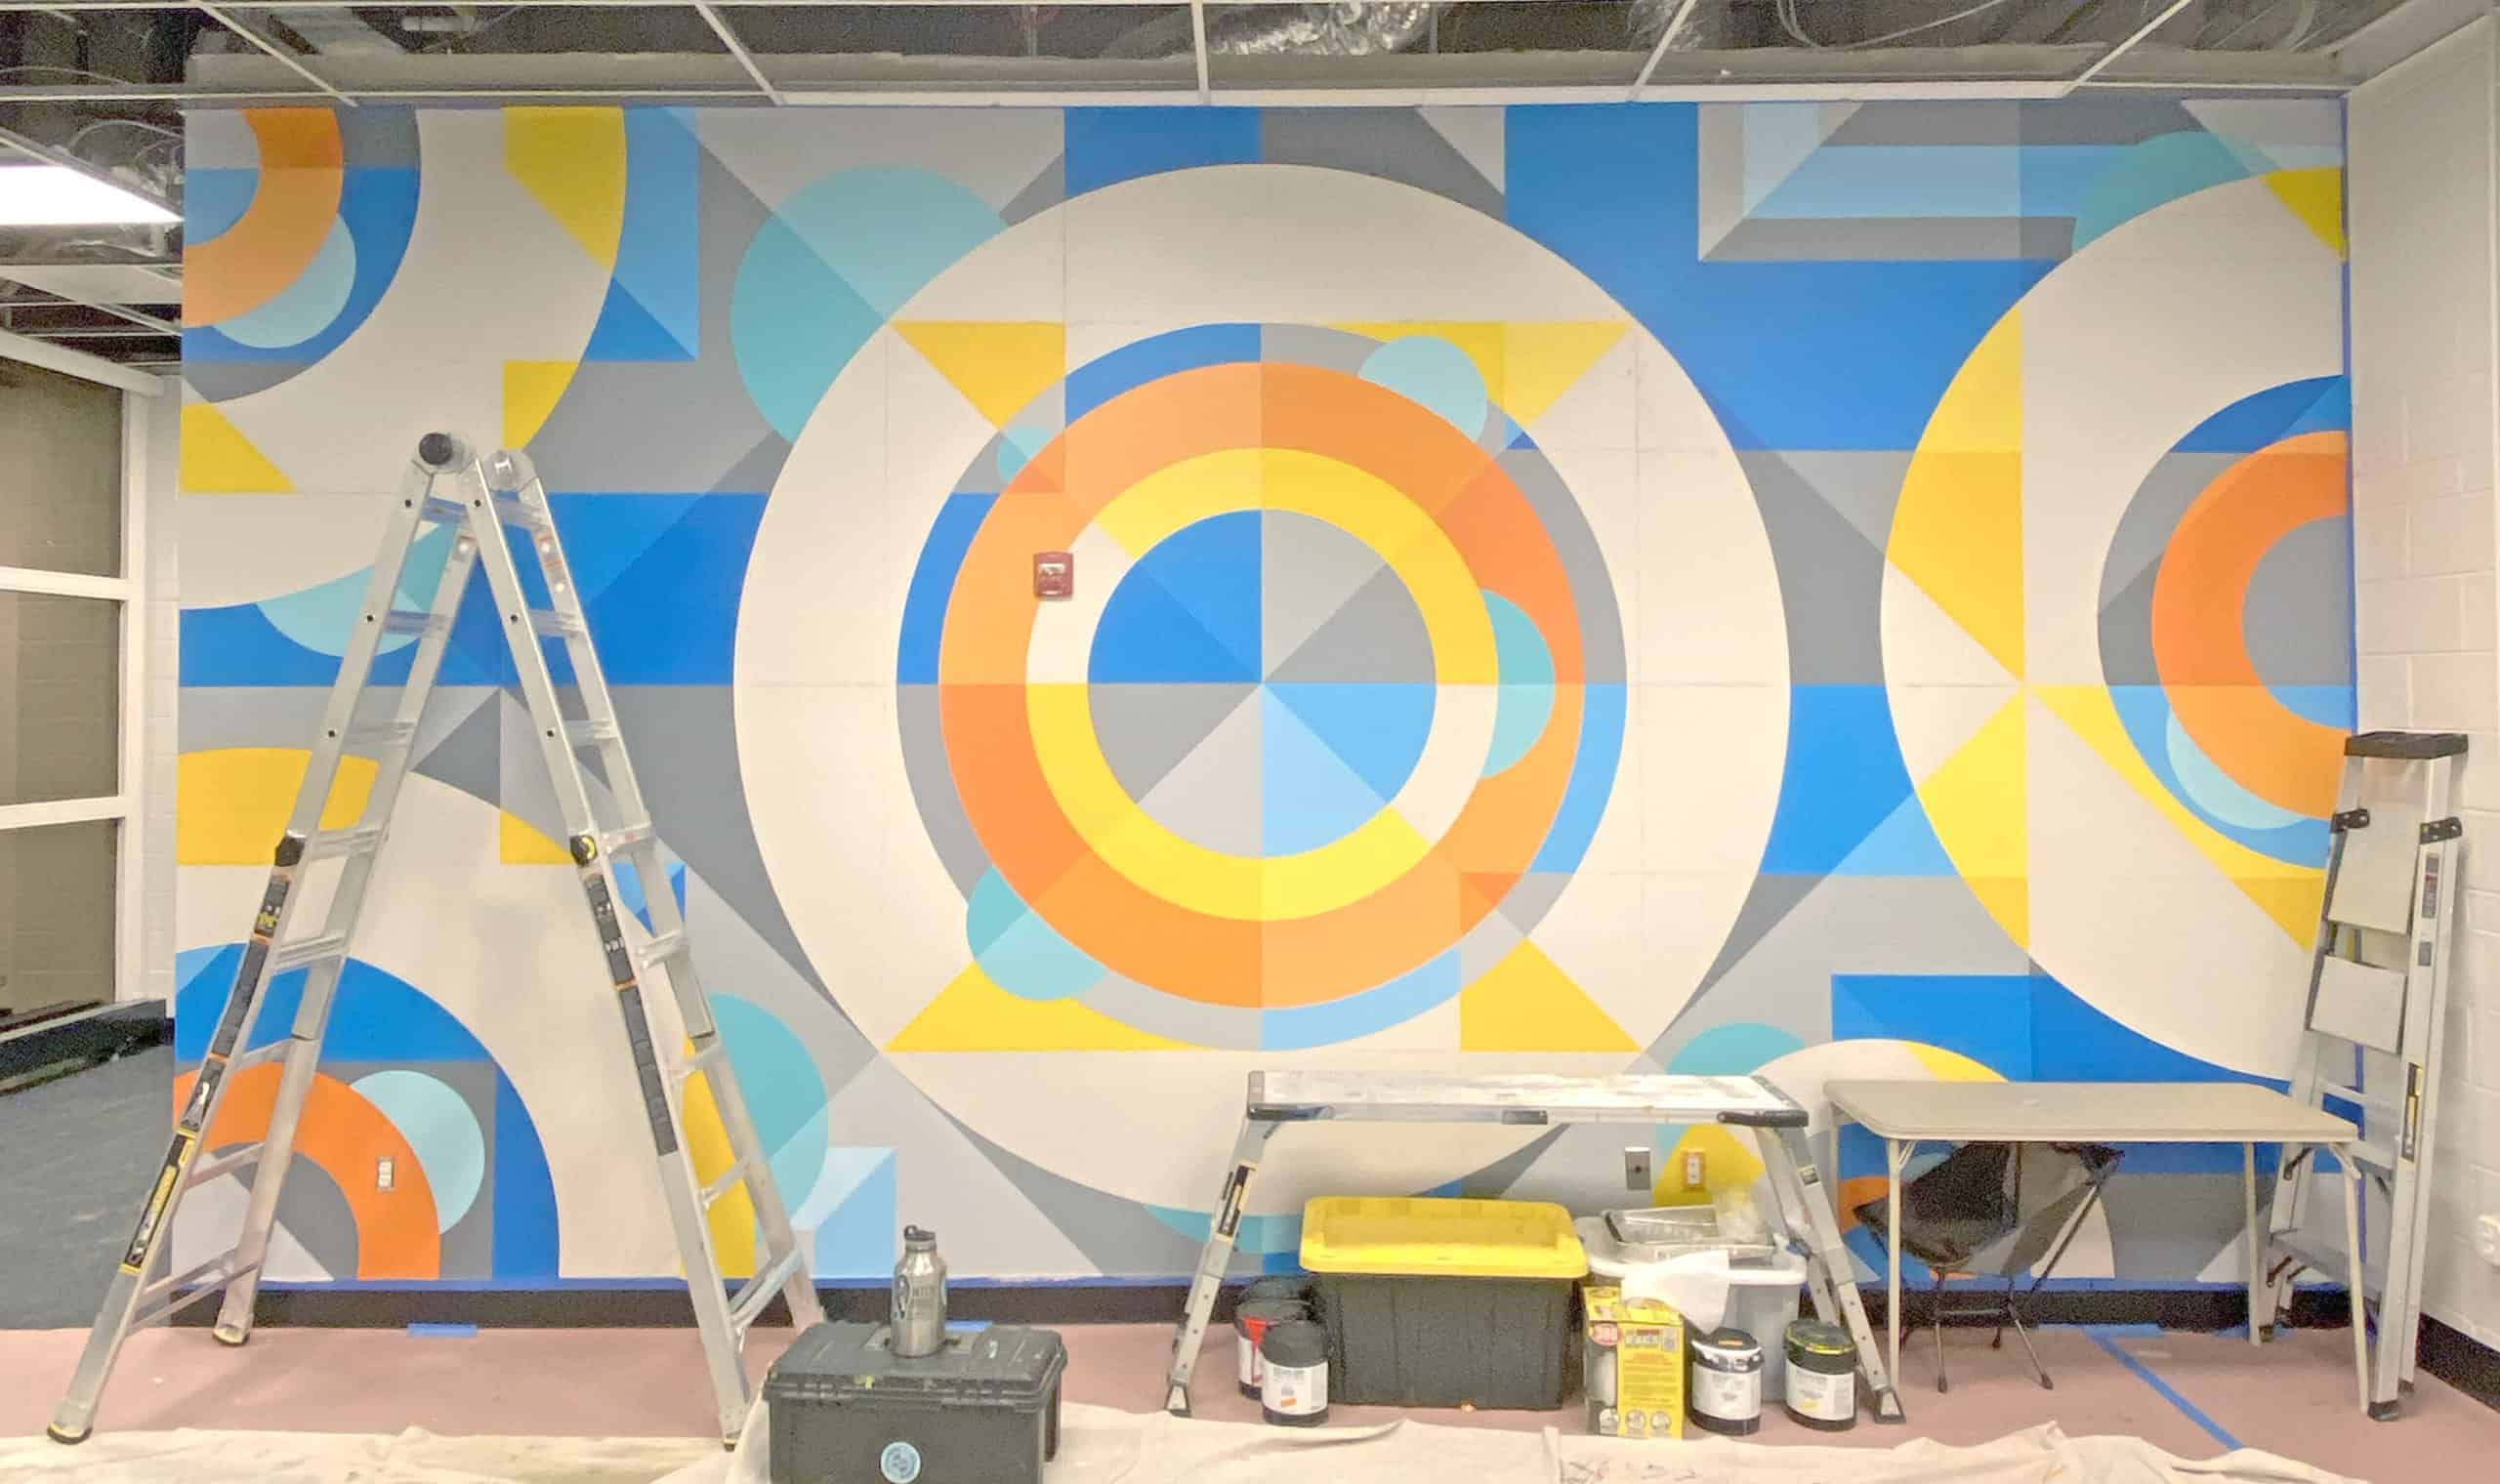 Jason T. Graves, Denver Post, Denver Murals, Geometric, Interior Design, Street Art